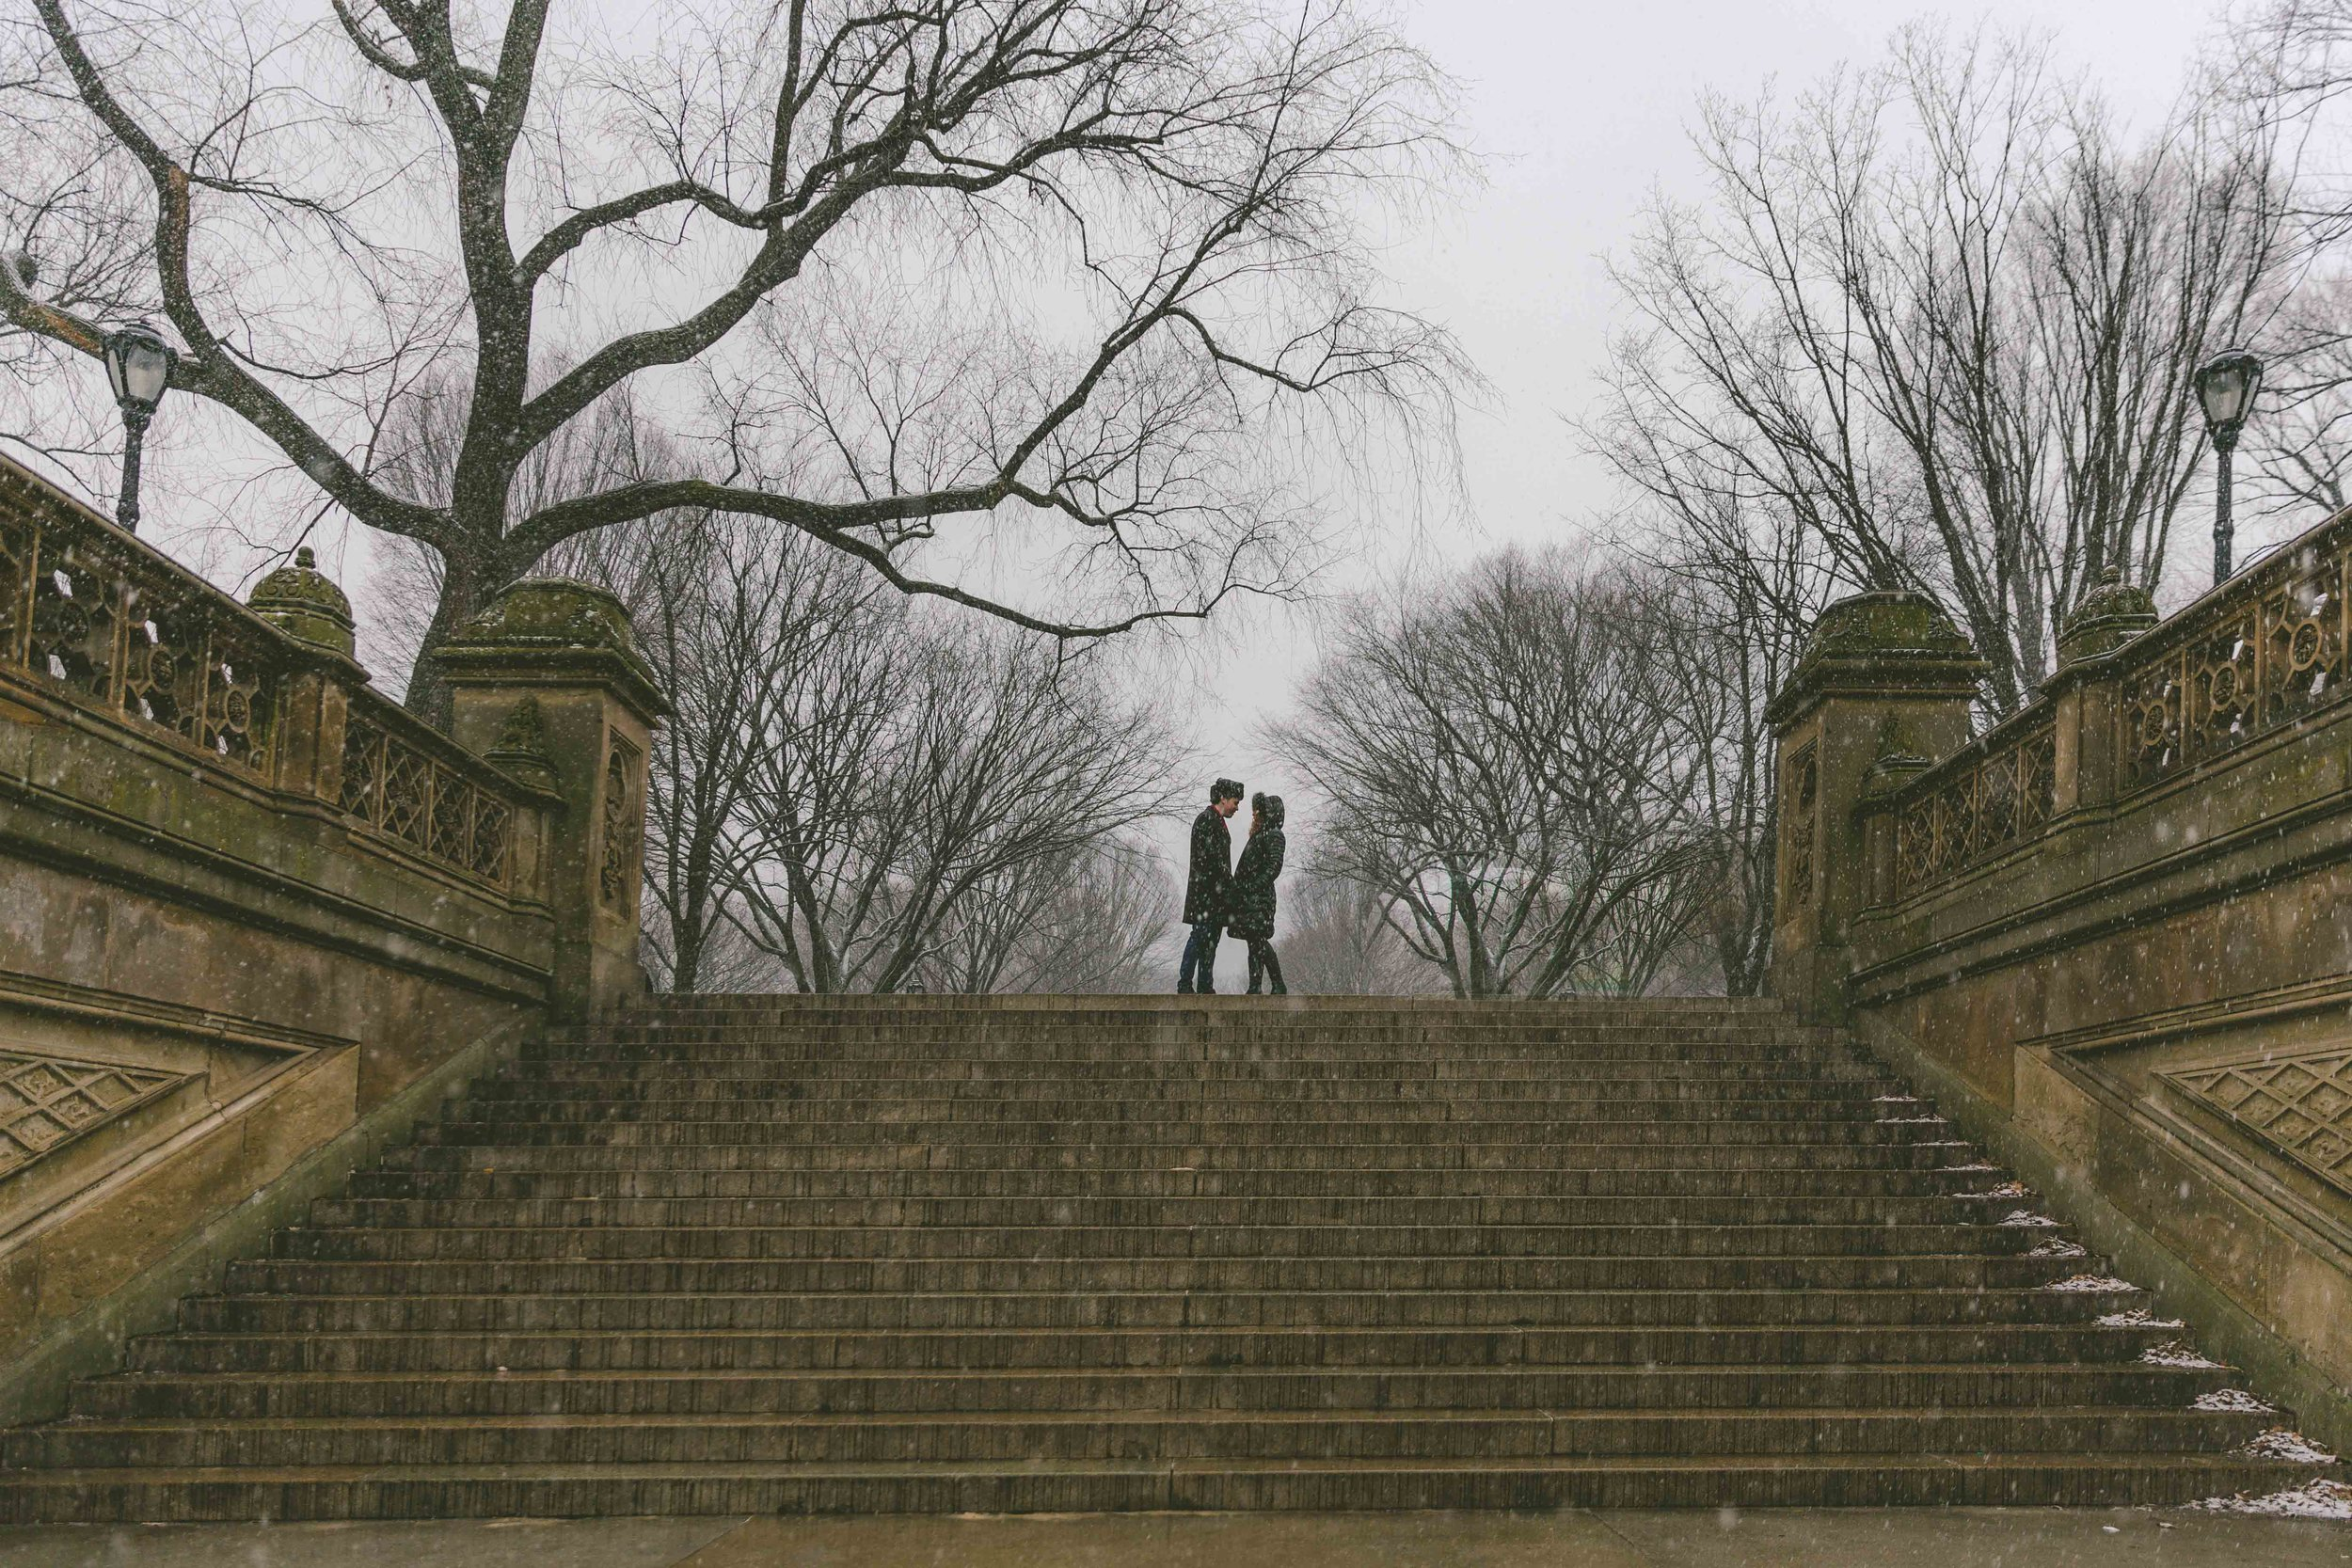 central-park-proposal-engagment-photography-snow-3-2.jpg